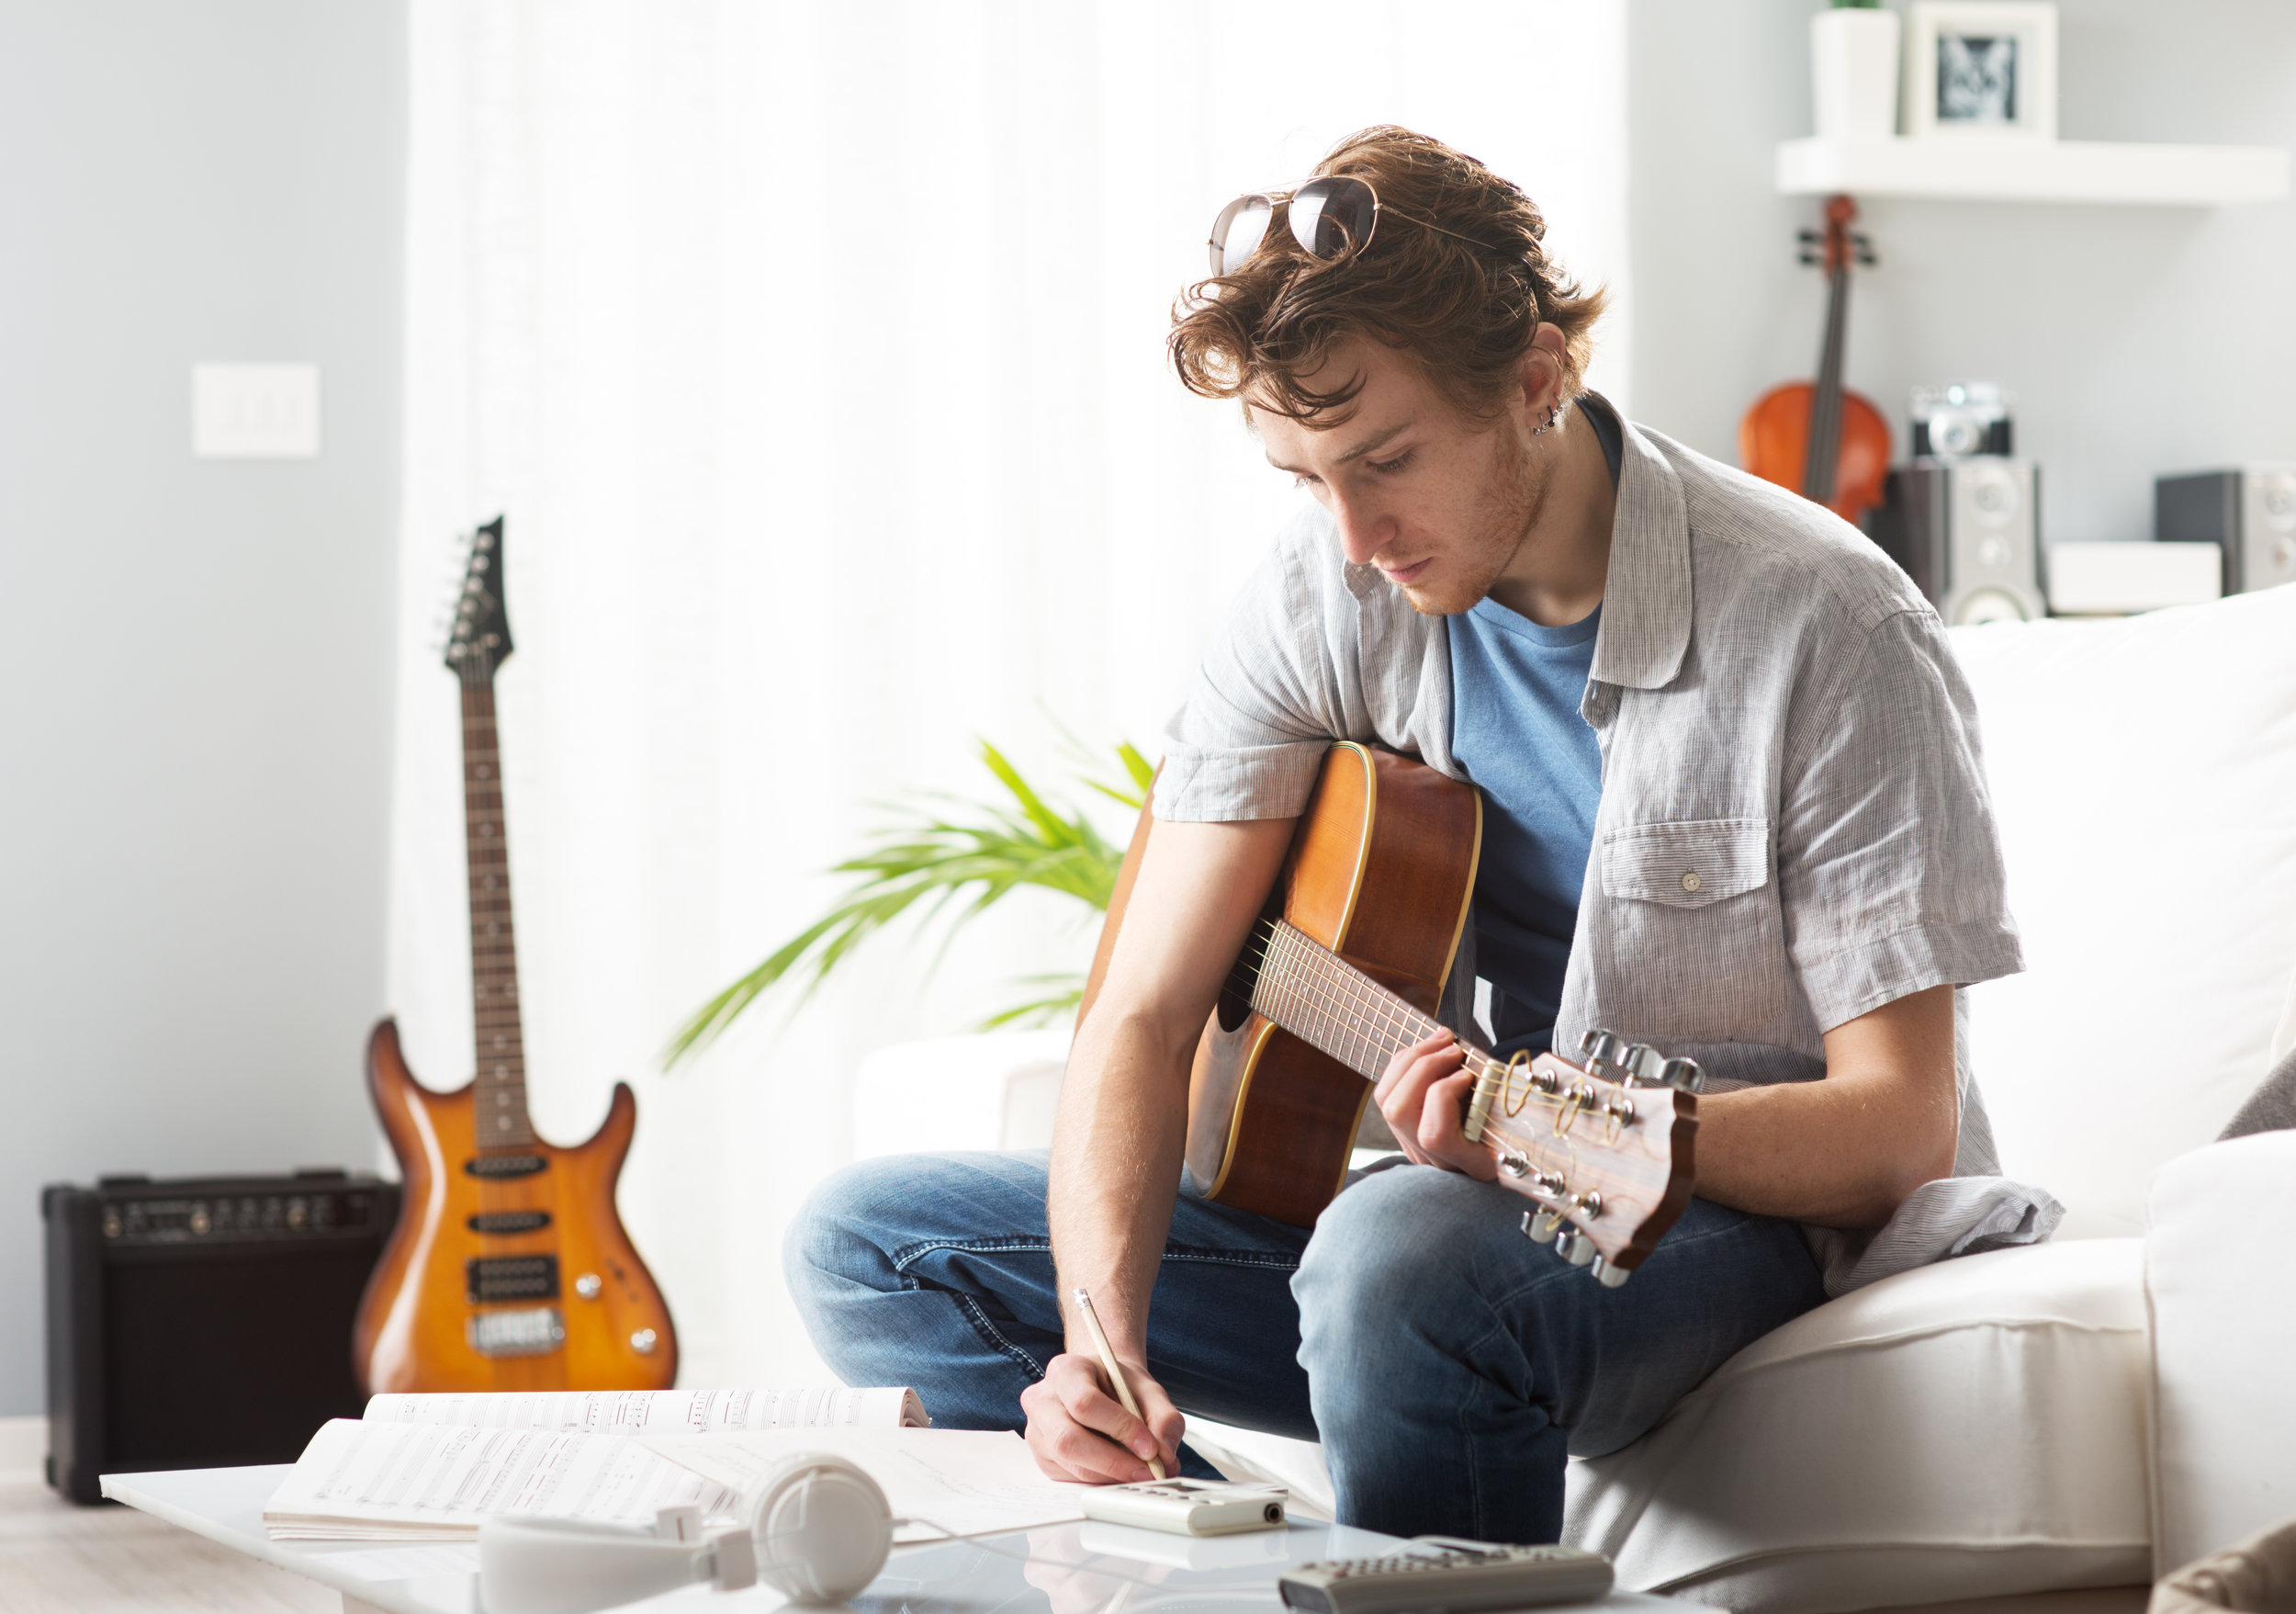 Write better songs, find producers, or become their own producer